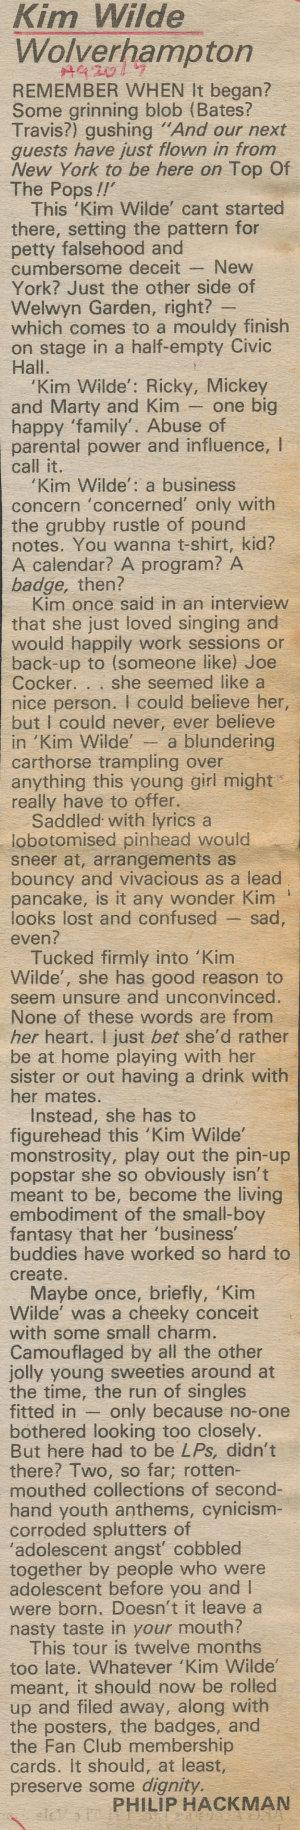 Sounds (UK), October 23, 1982